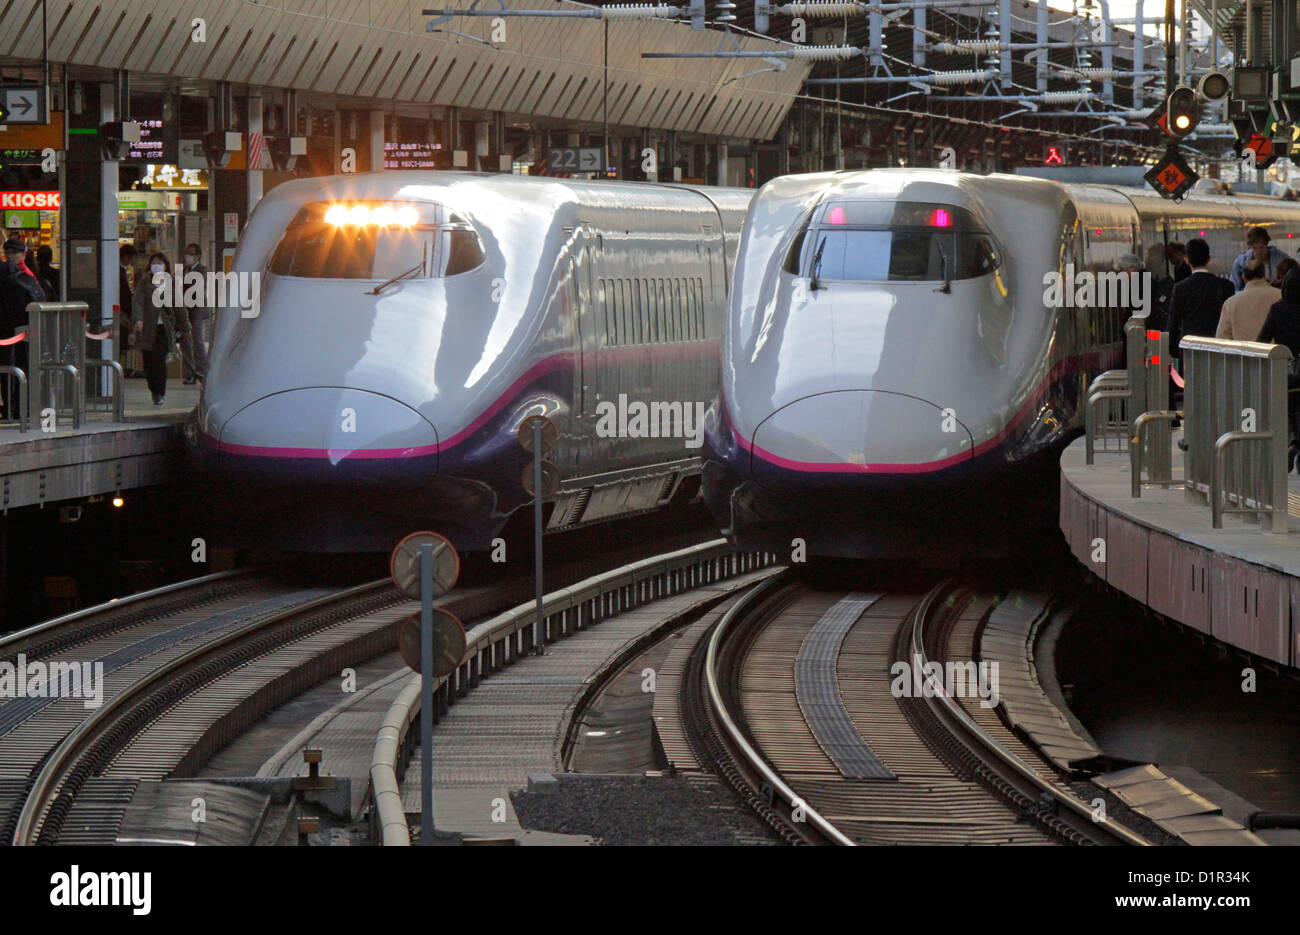 The Tohoku Shinkansen E2 series high-speed rail line at Tokyo Station Japan - Stock Image